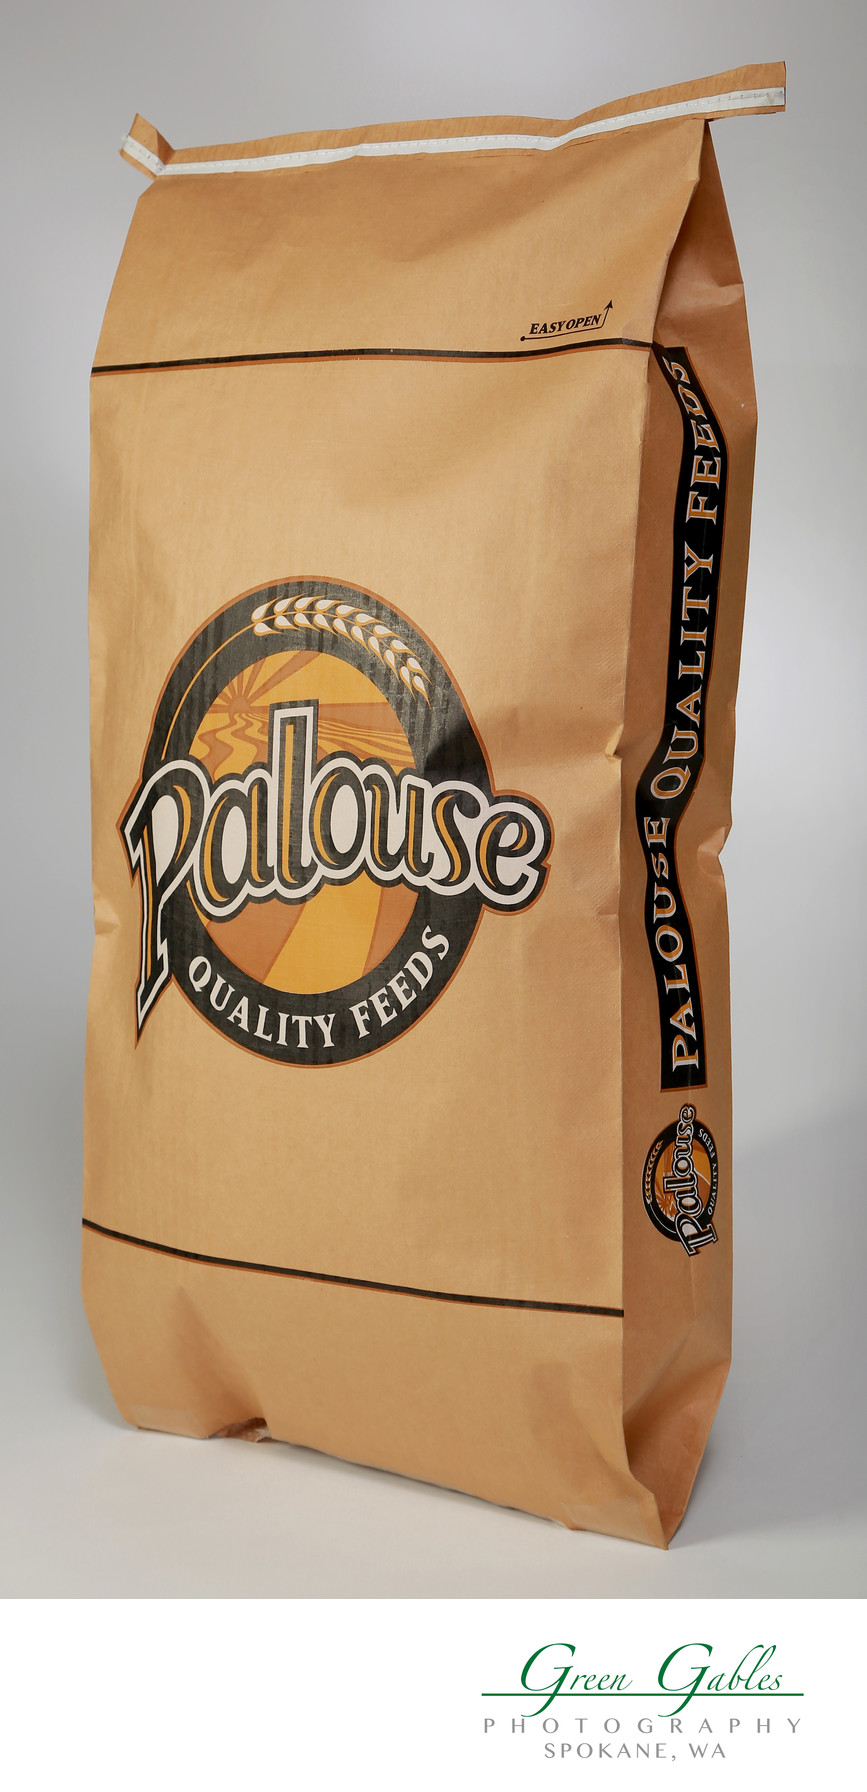 Palouse Quality Feed, Justus Bag Co.